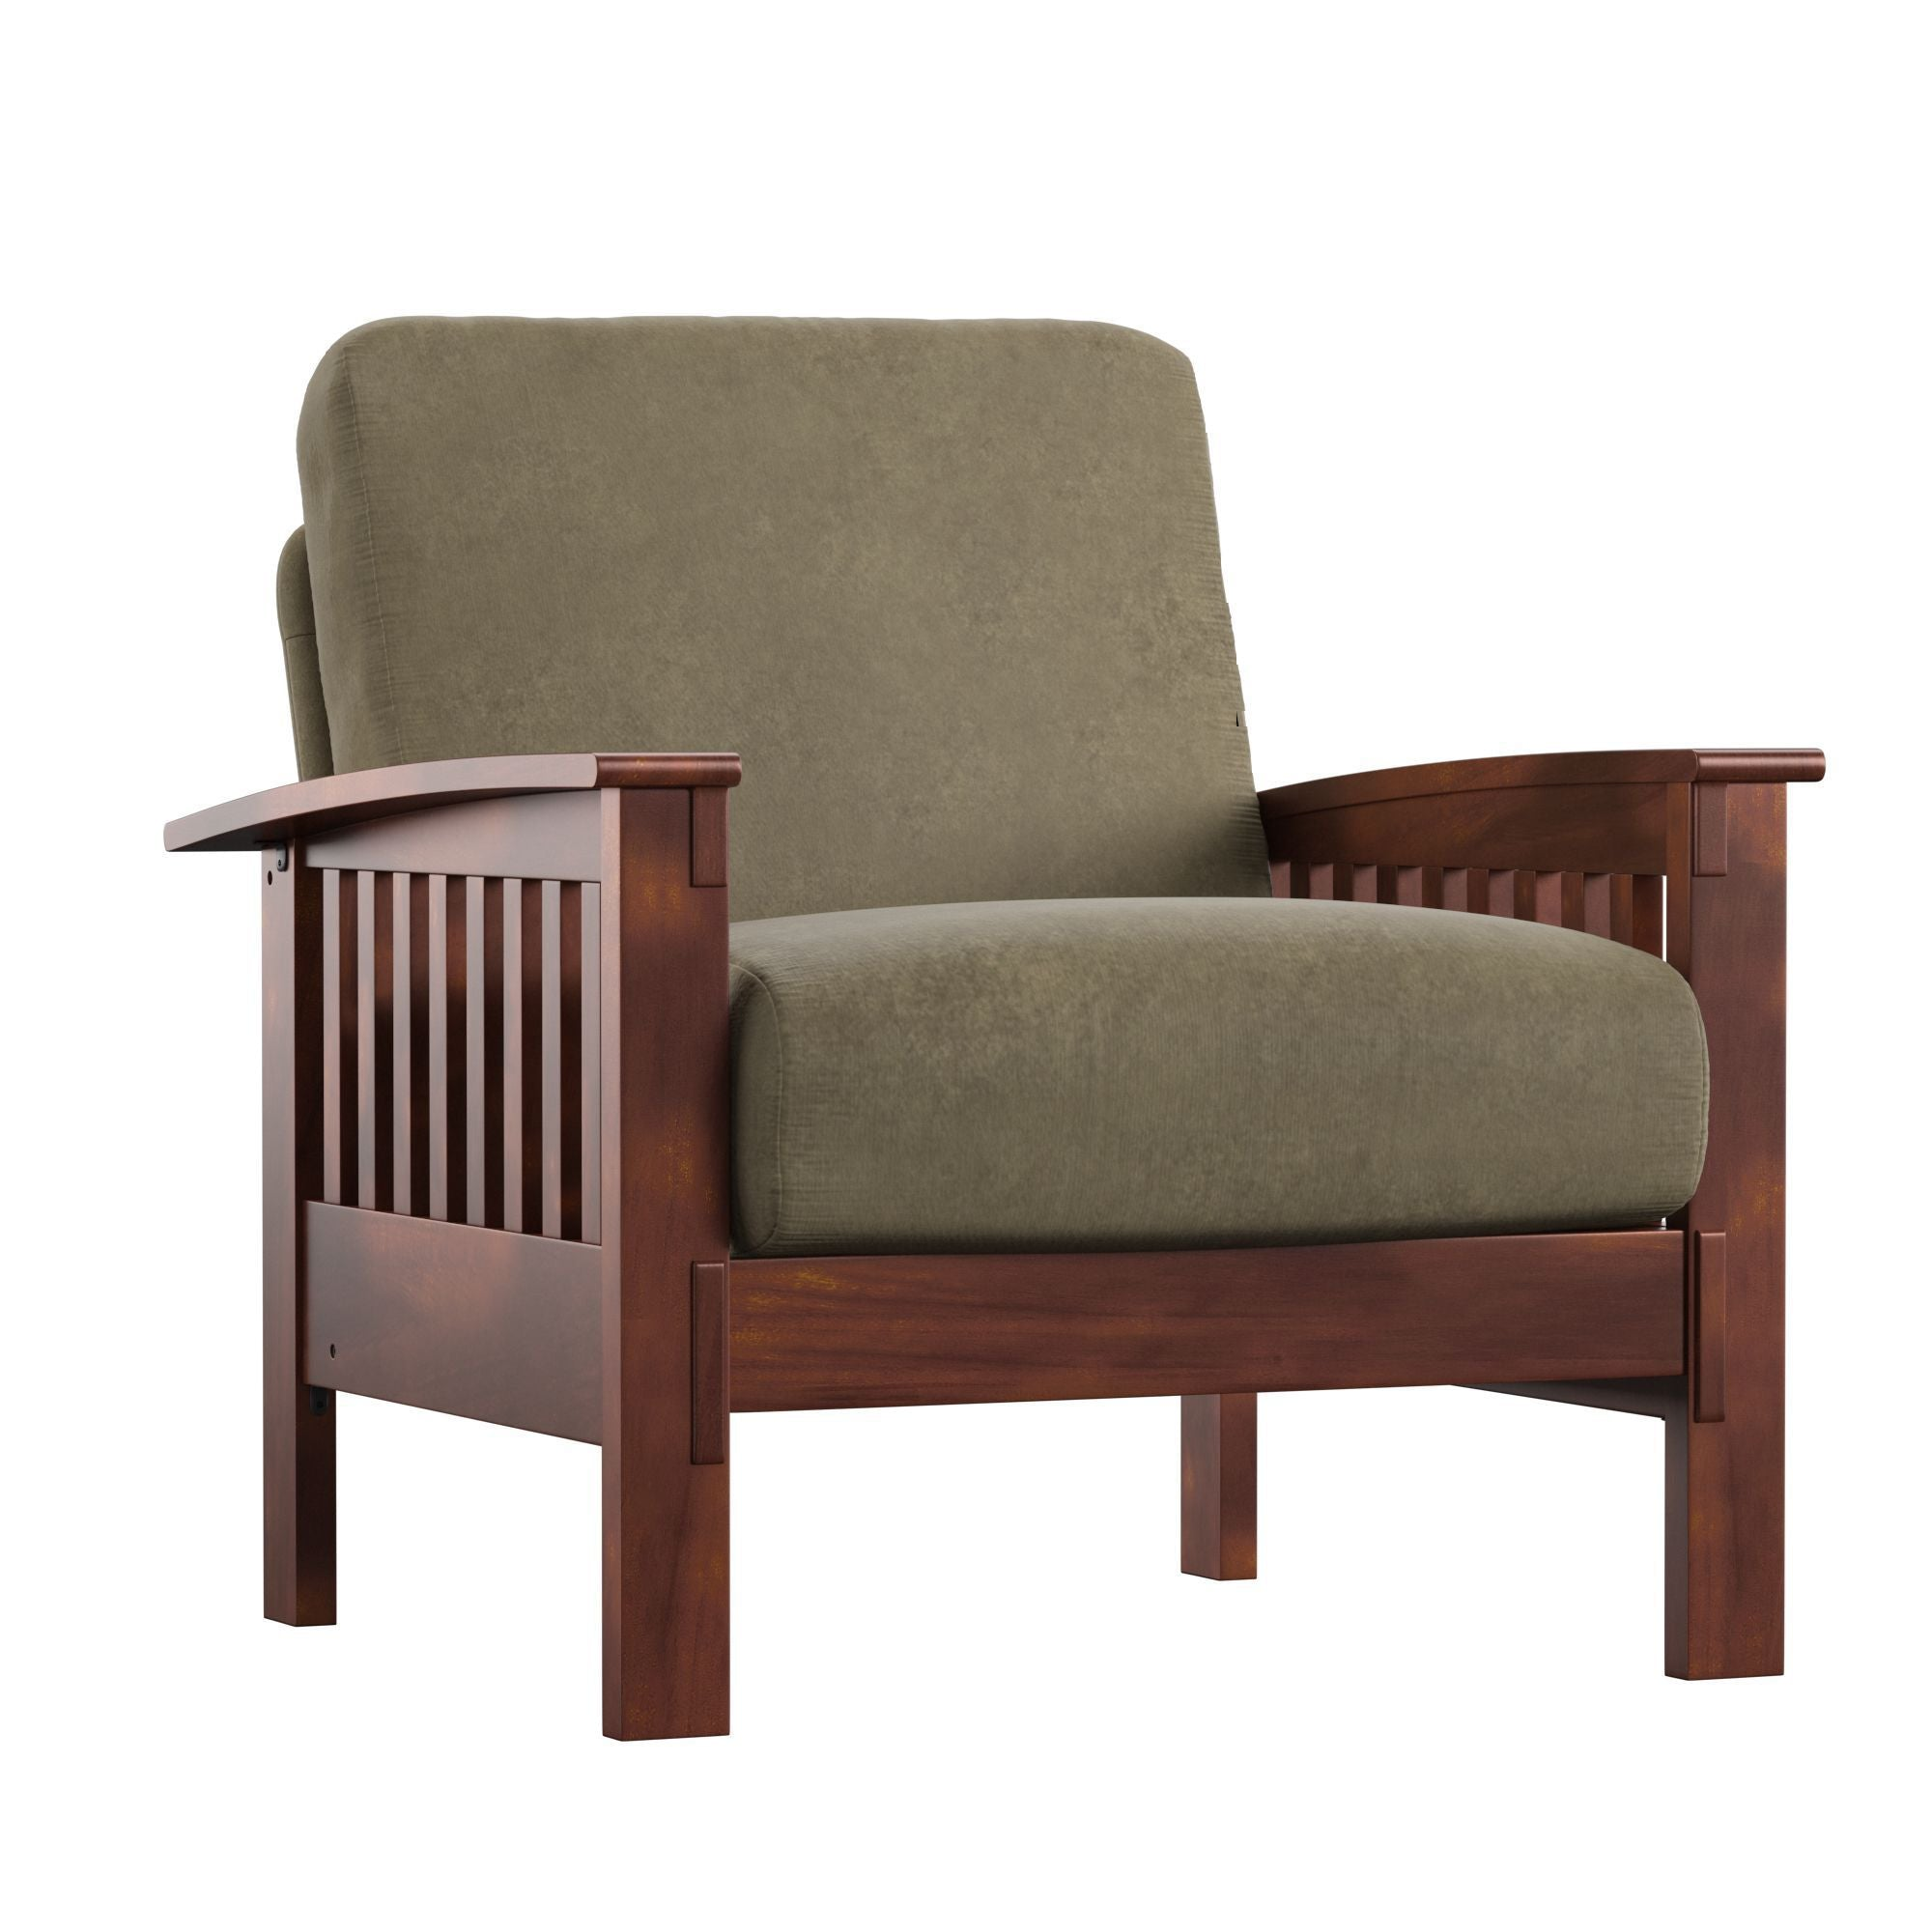 Mission-Style Wood Accent Chair - Olive Microfiber, Oak Finish